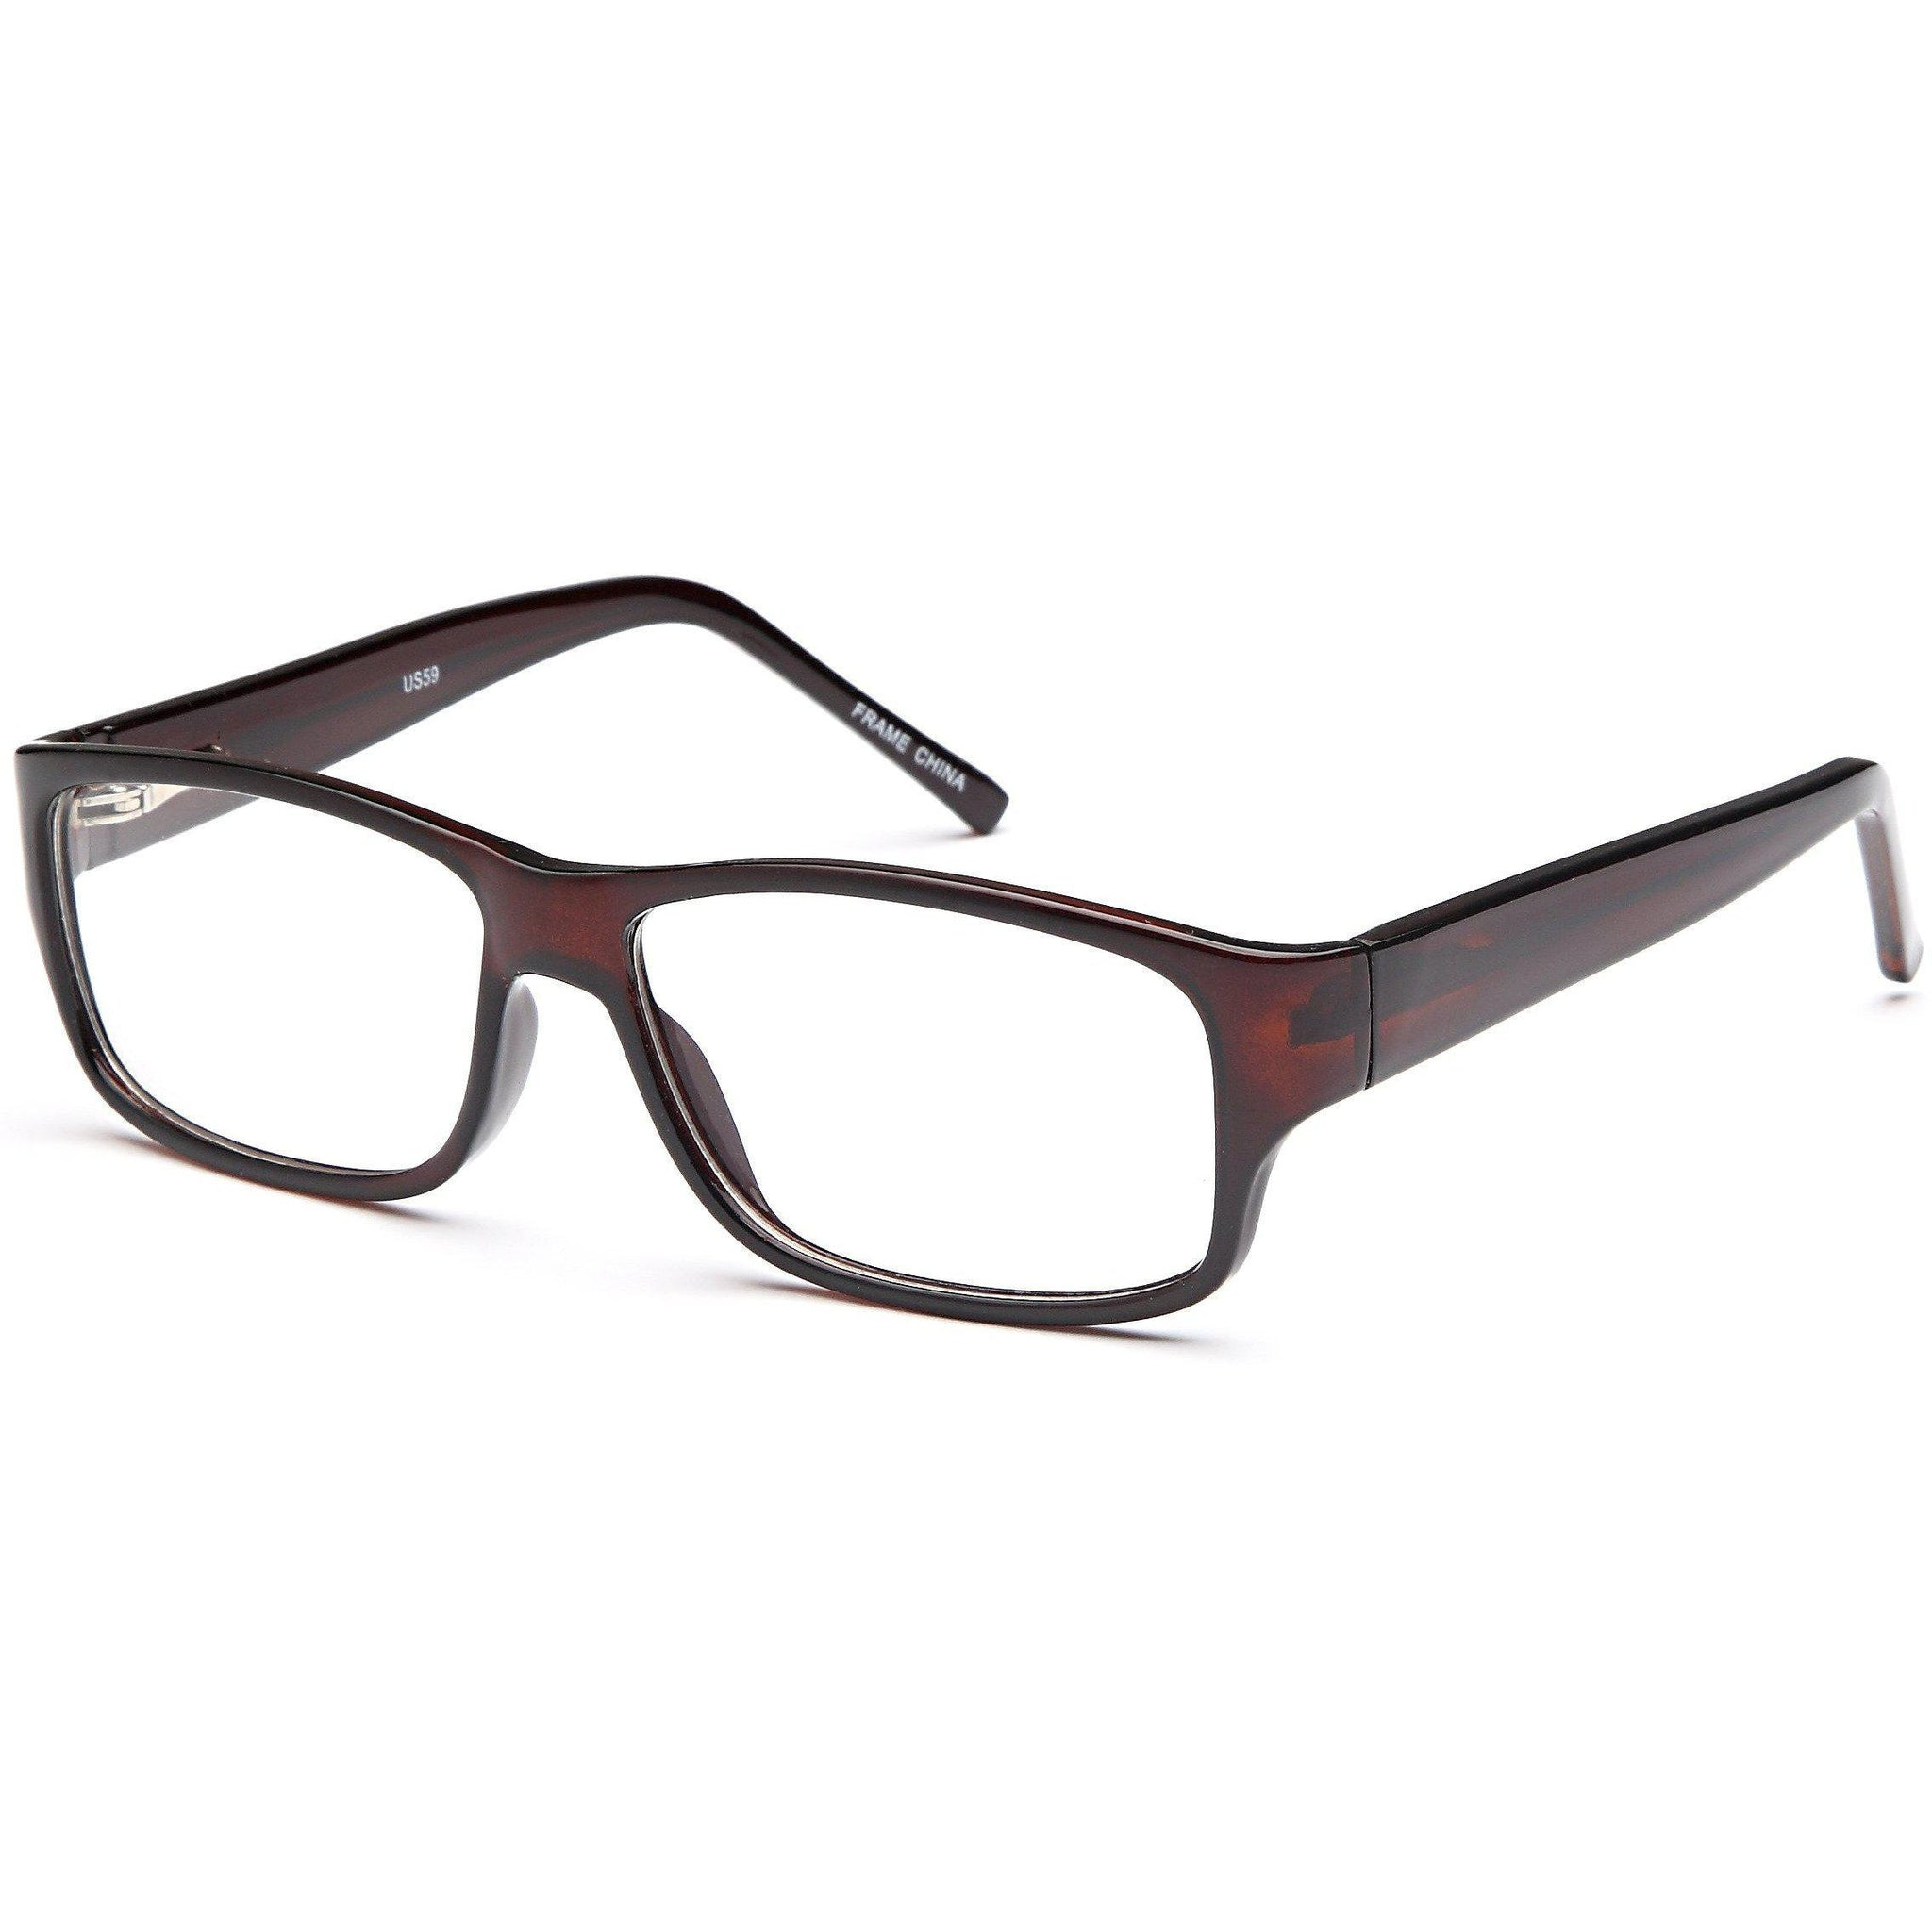 4U Prescription Glasses US 59 Optical Eyeglasses Frame - timetoshade